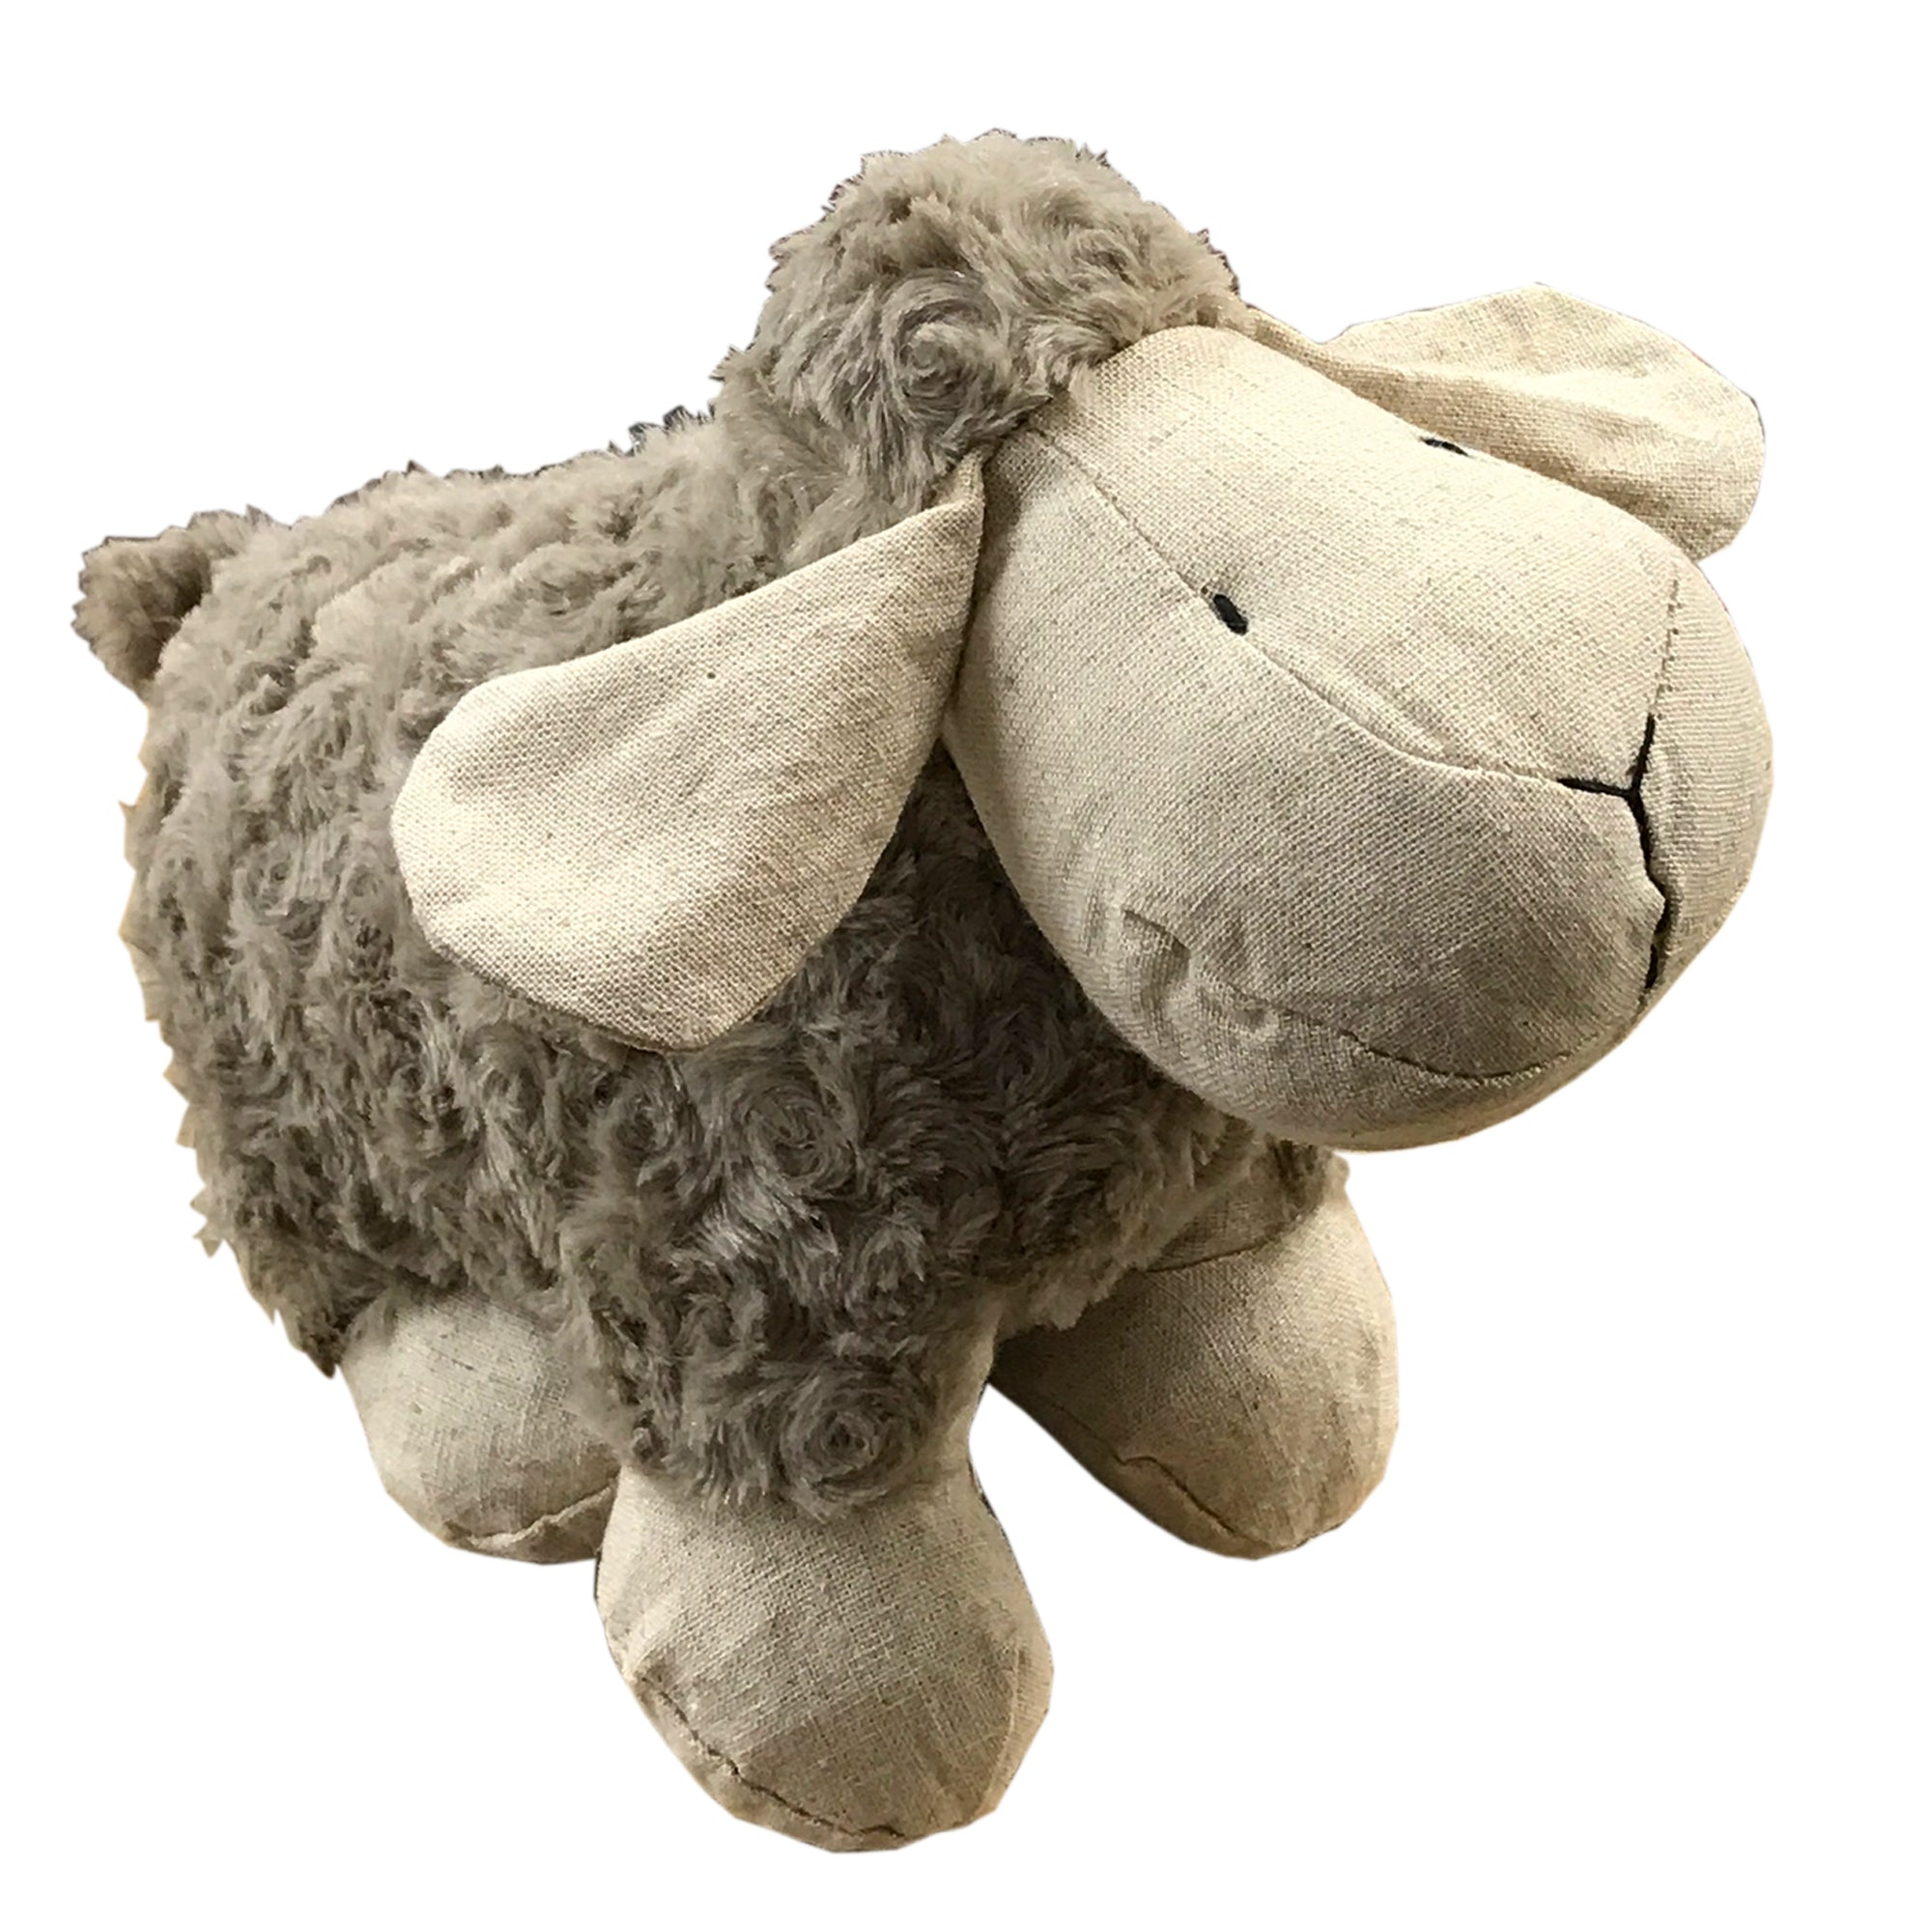 Sheep Doorstop - Brown, Building Materials by Gifts24-7